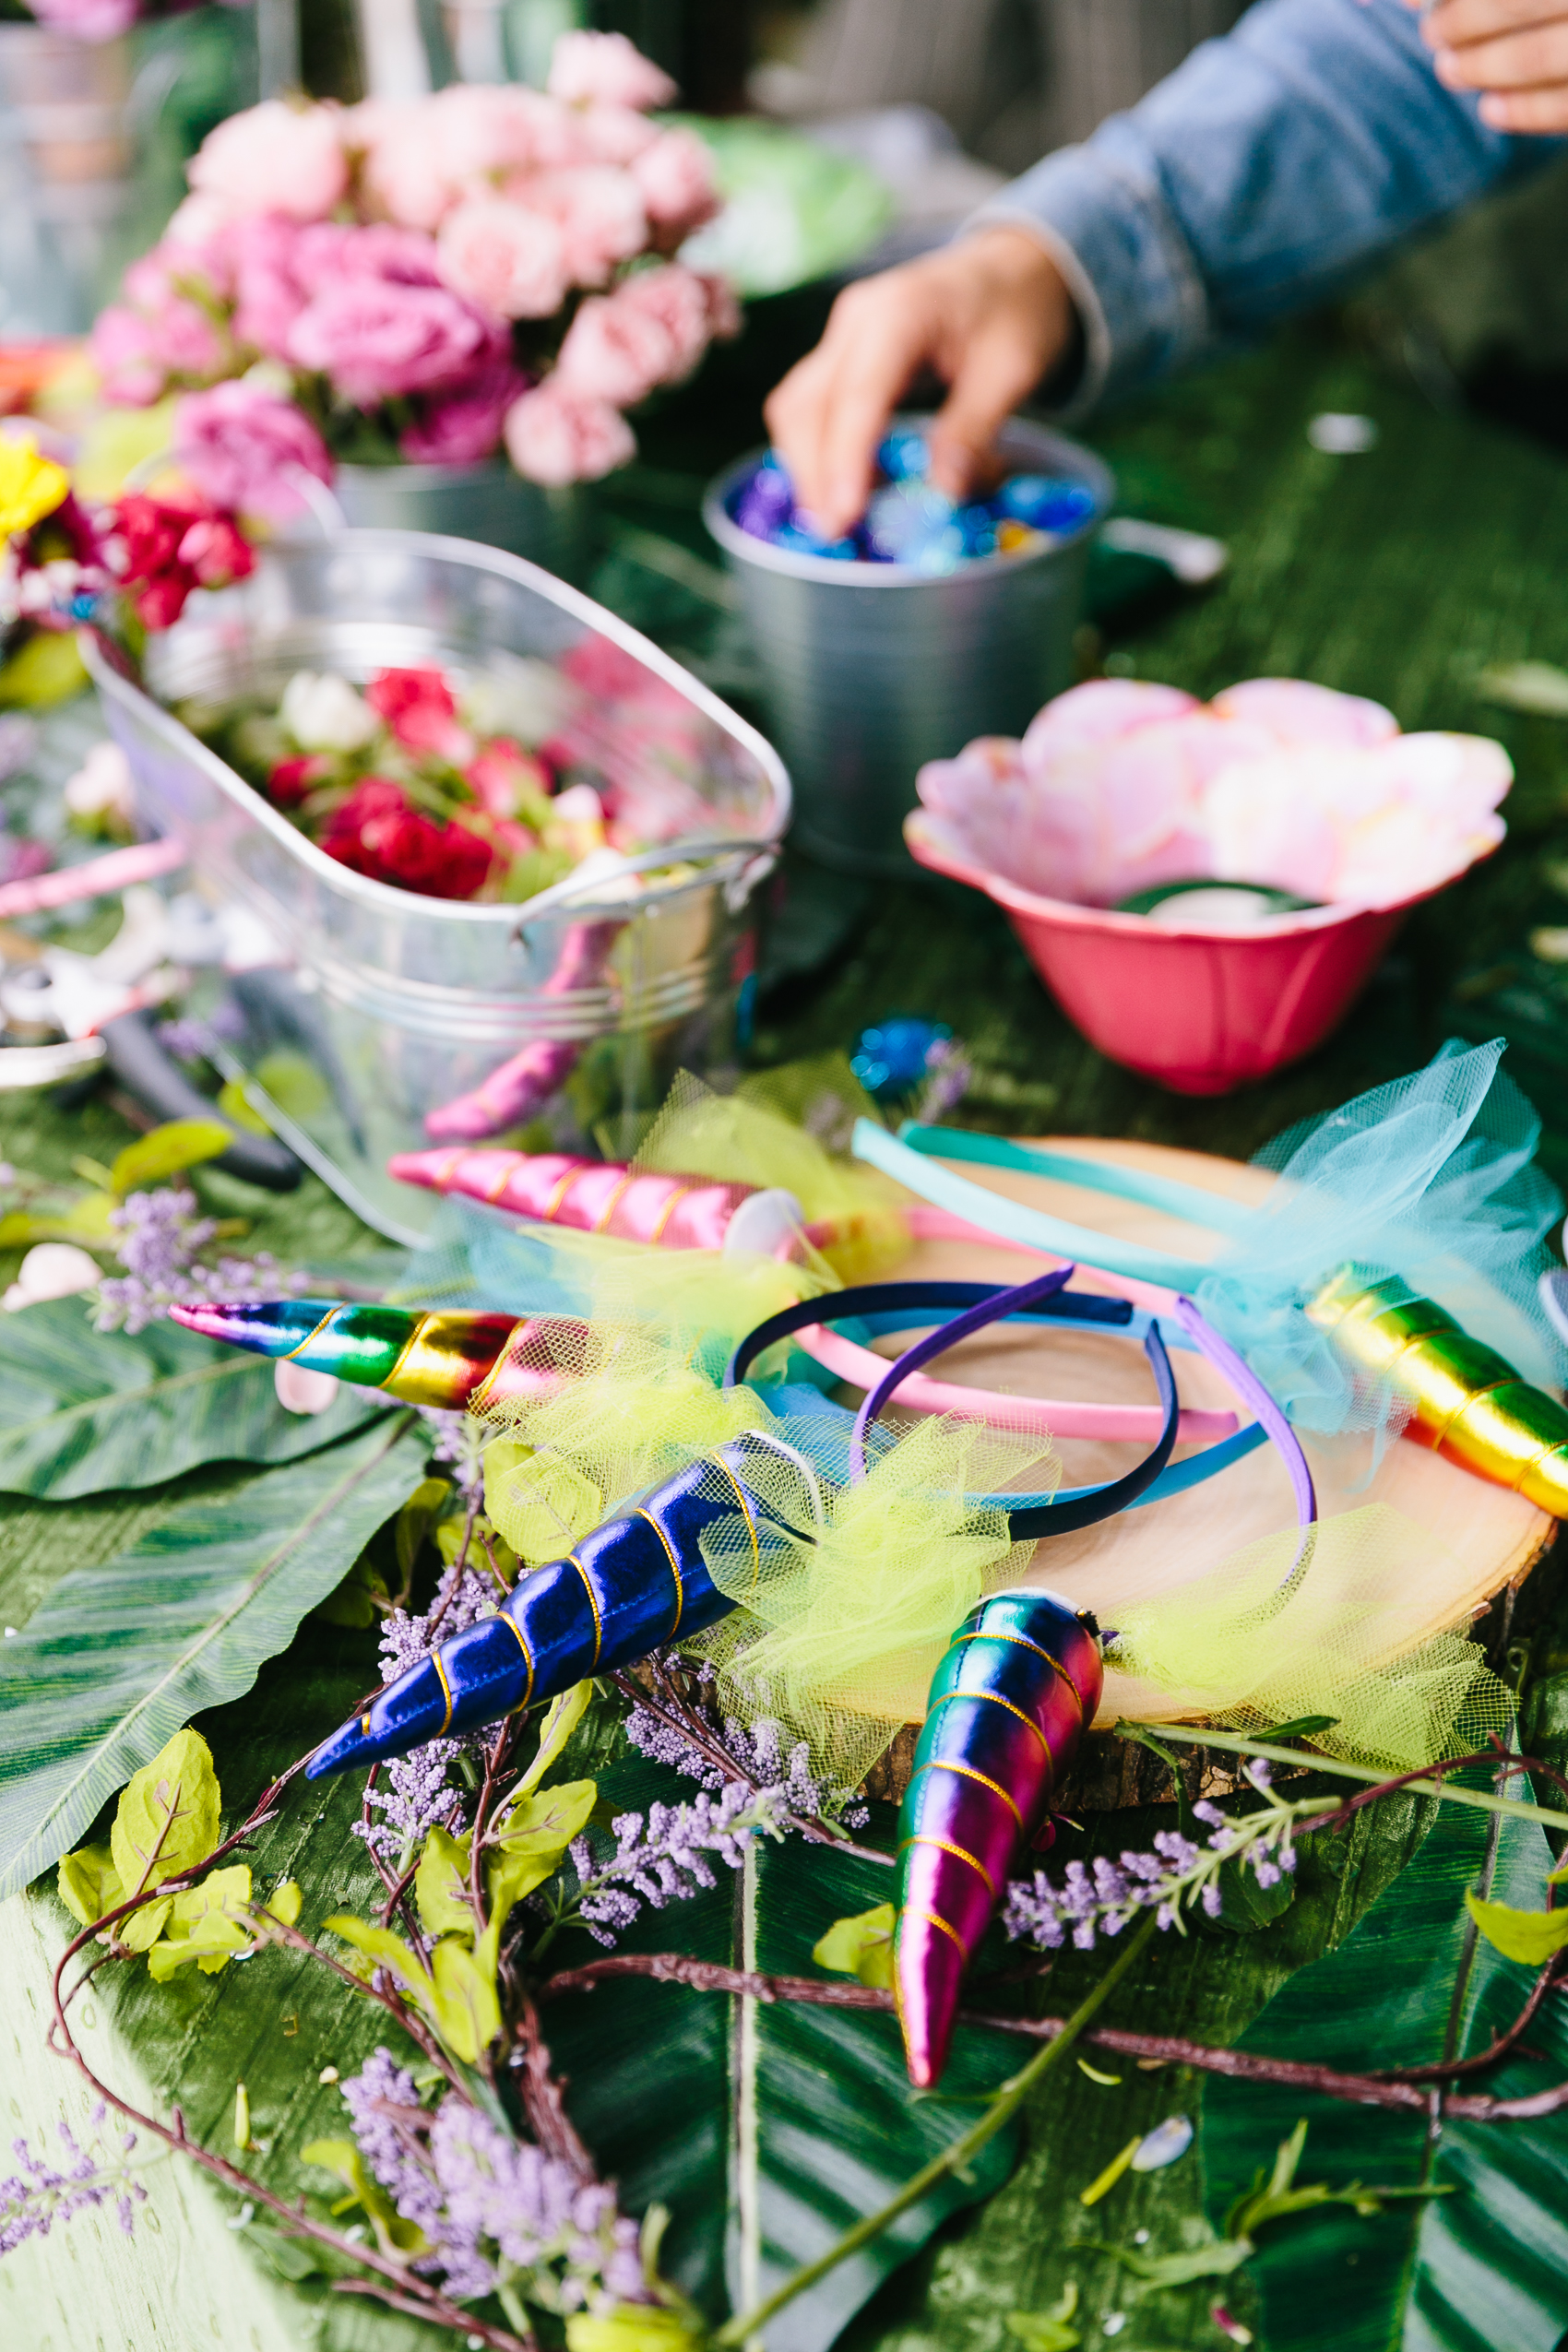 Los_Angeles_Family_Photographer_Luxury_Childrens_Party_Beverly_Hills_Unicorn_Birthday_Party-0821.jpg